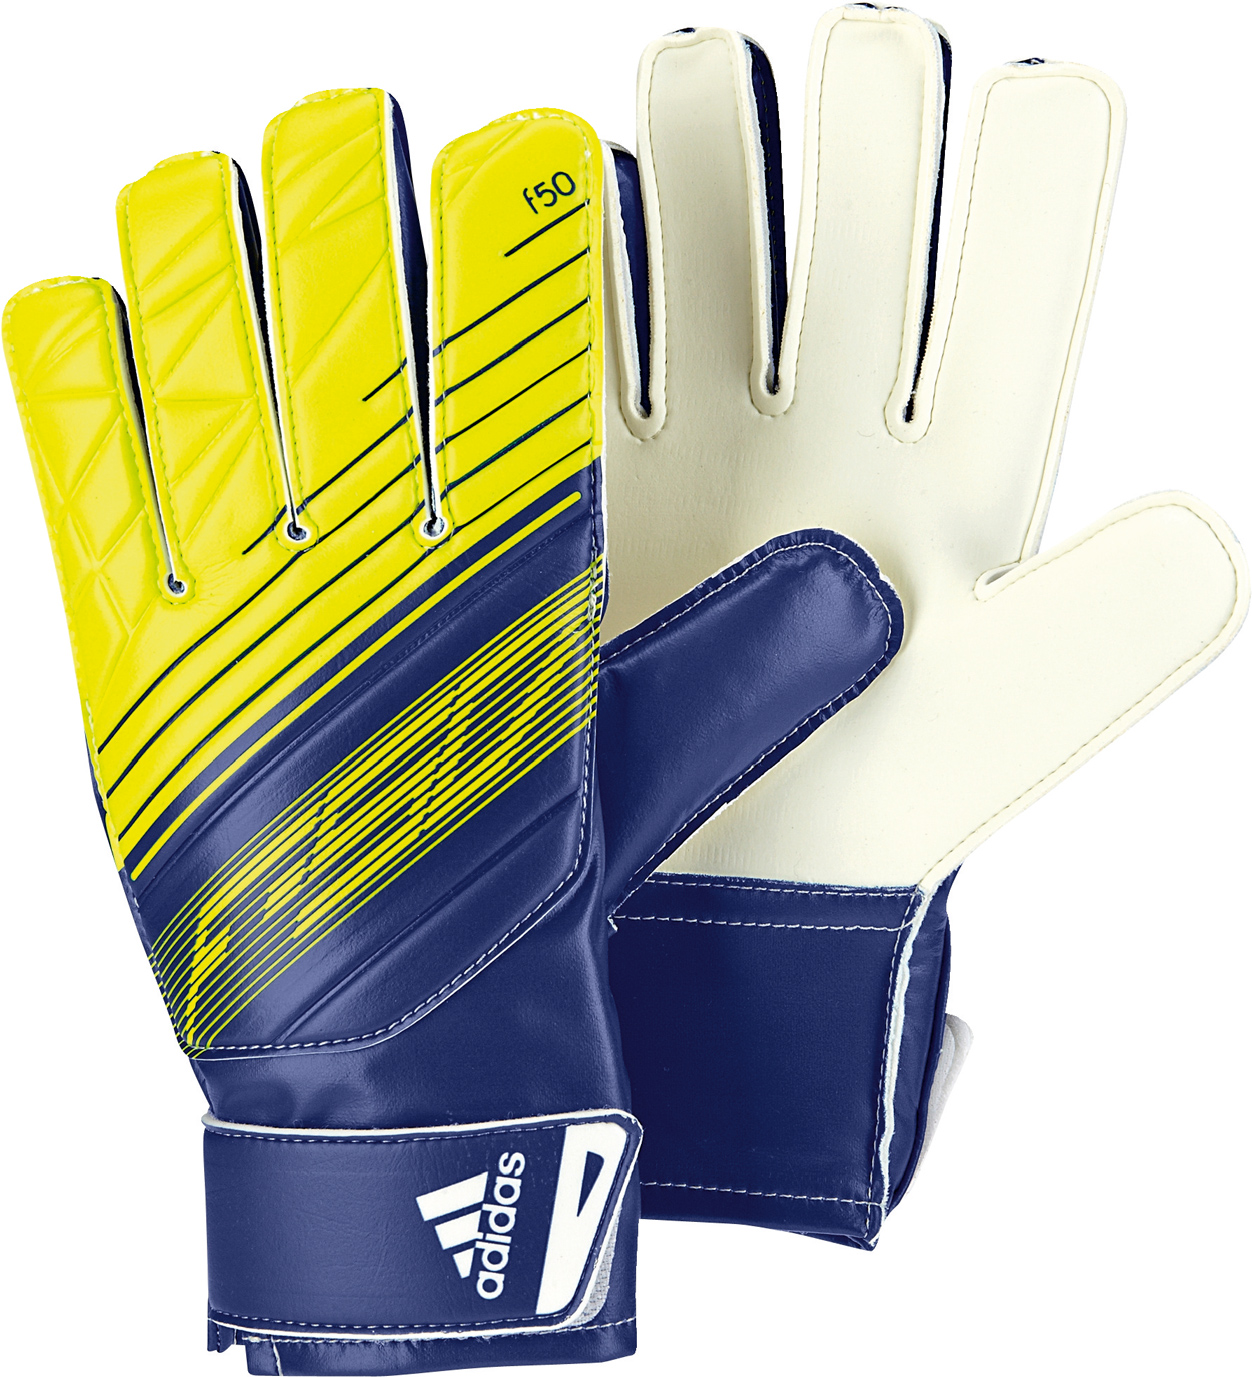 Torwart-Handschuh F50 Training